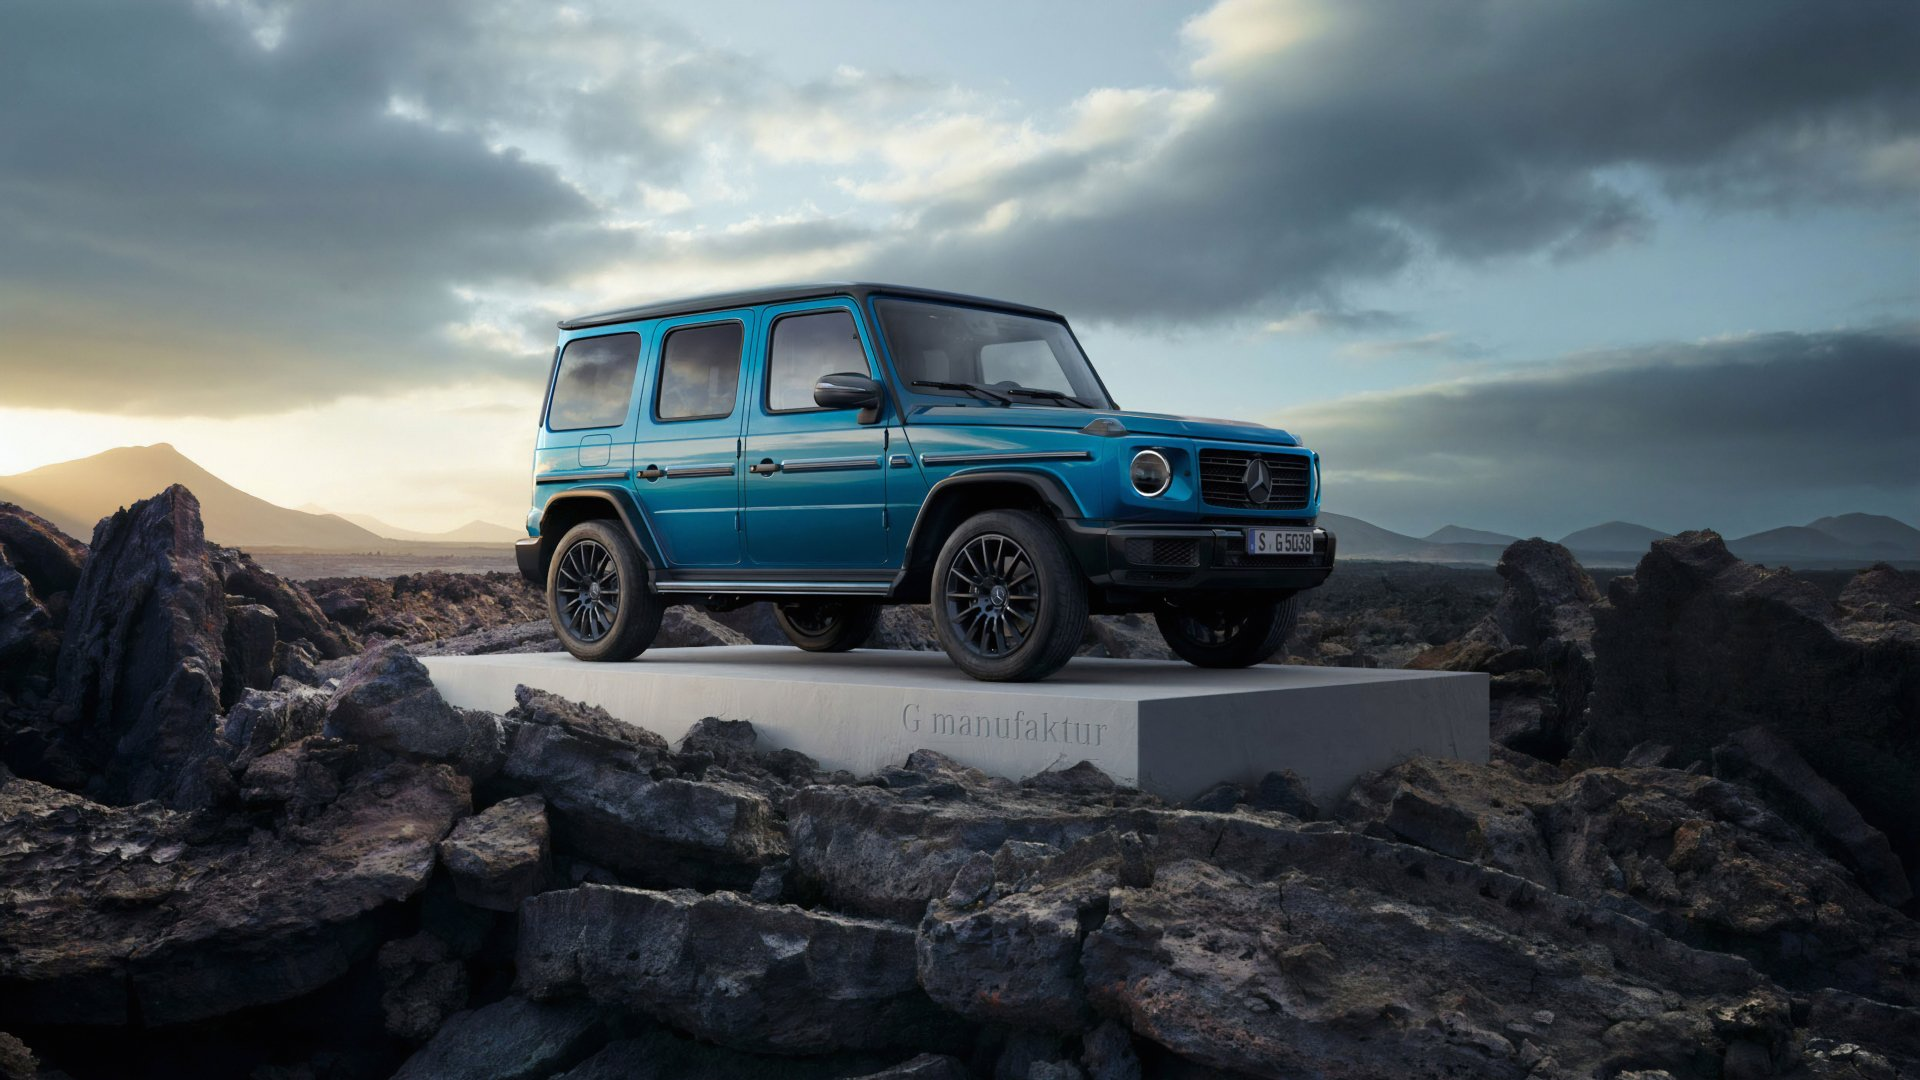 5 4k Ultra Hd Mercedes Benz G Class Wallpapers Background Images Wallpaper Abyss